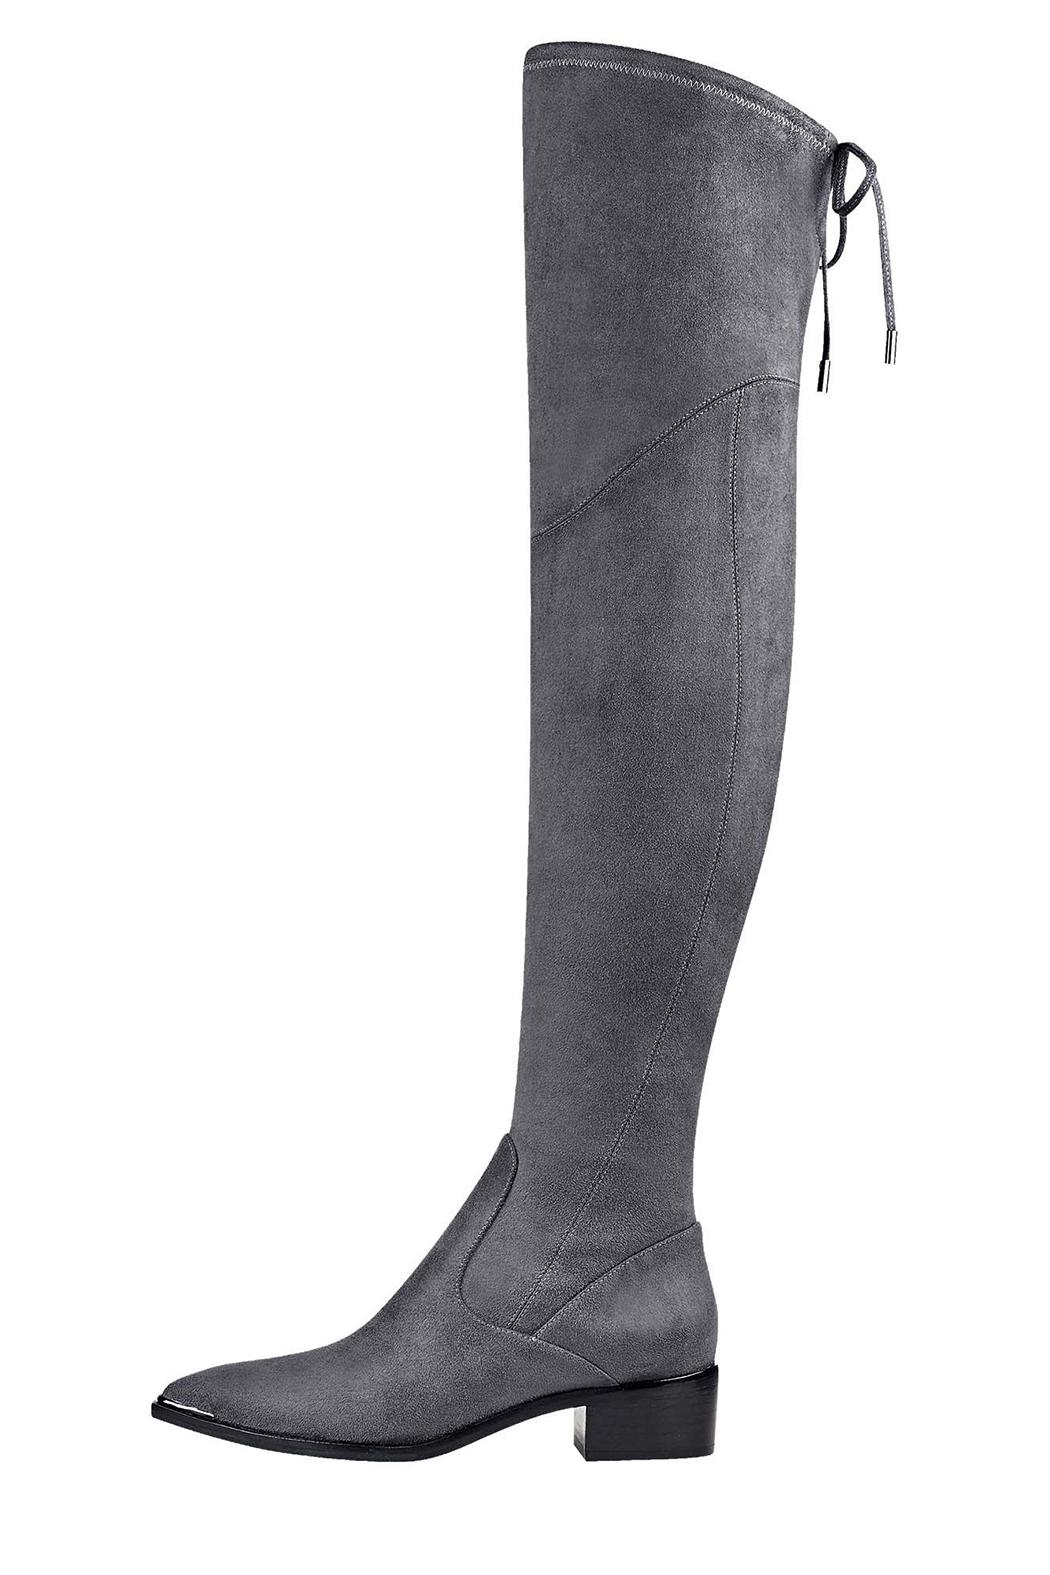 Marc Fisher LTD Yuna Grey Boot - Front Cropped Image